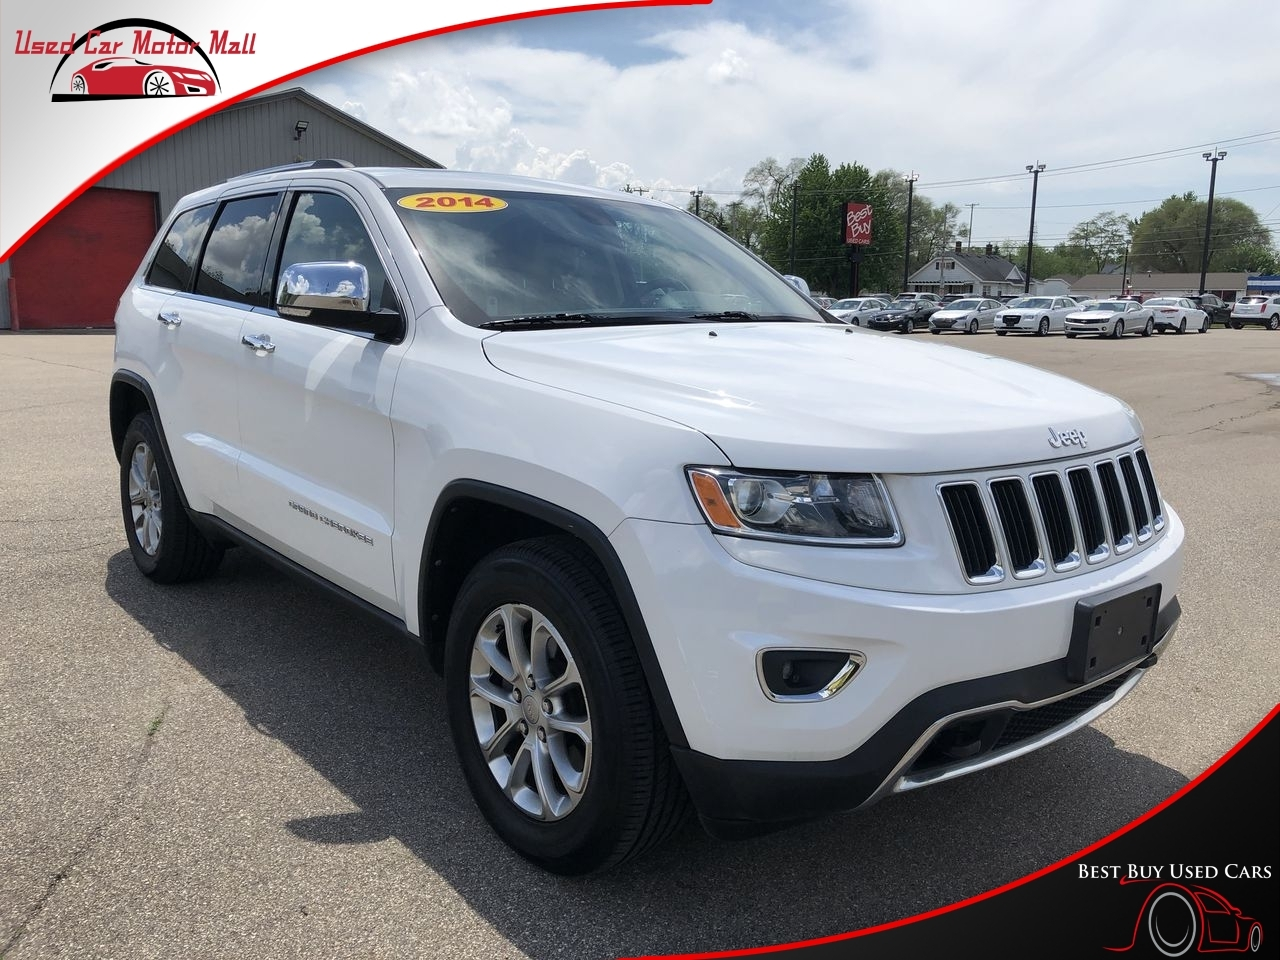 2014 Jeep Grand Cherokee Laredo, 457990, Photo 1